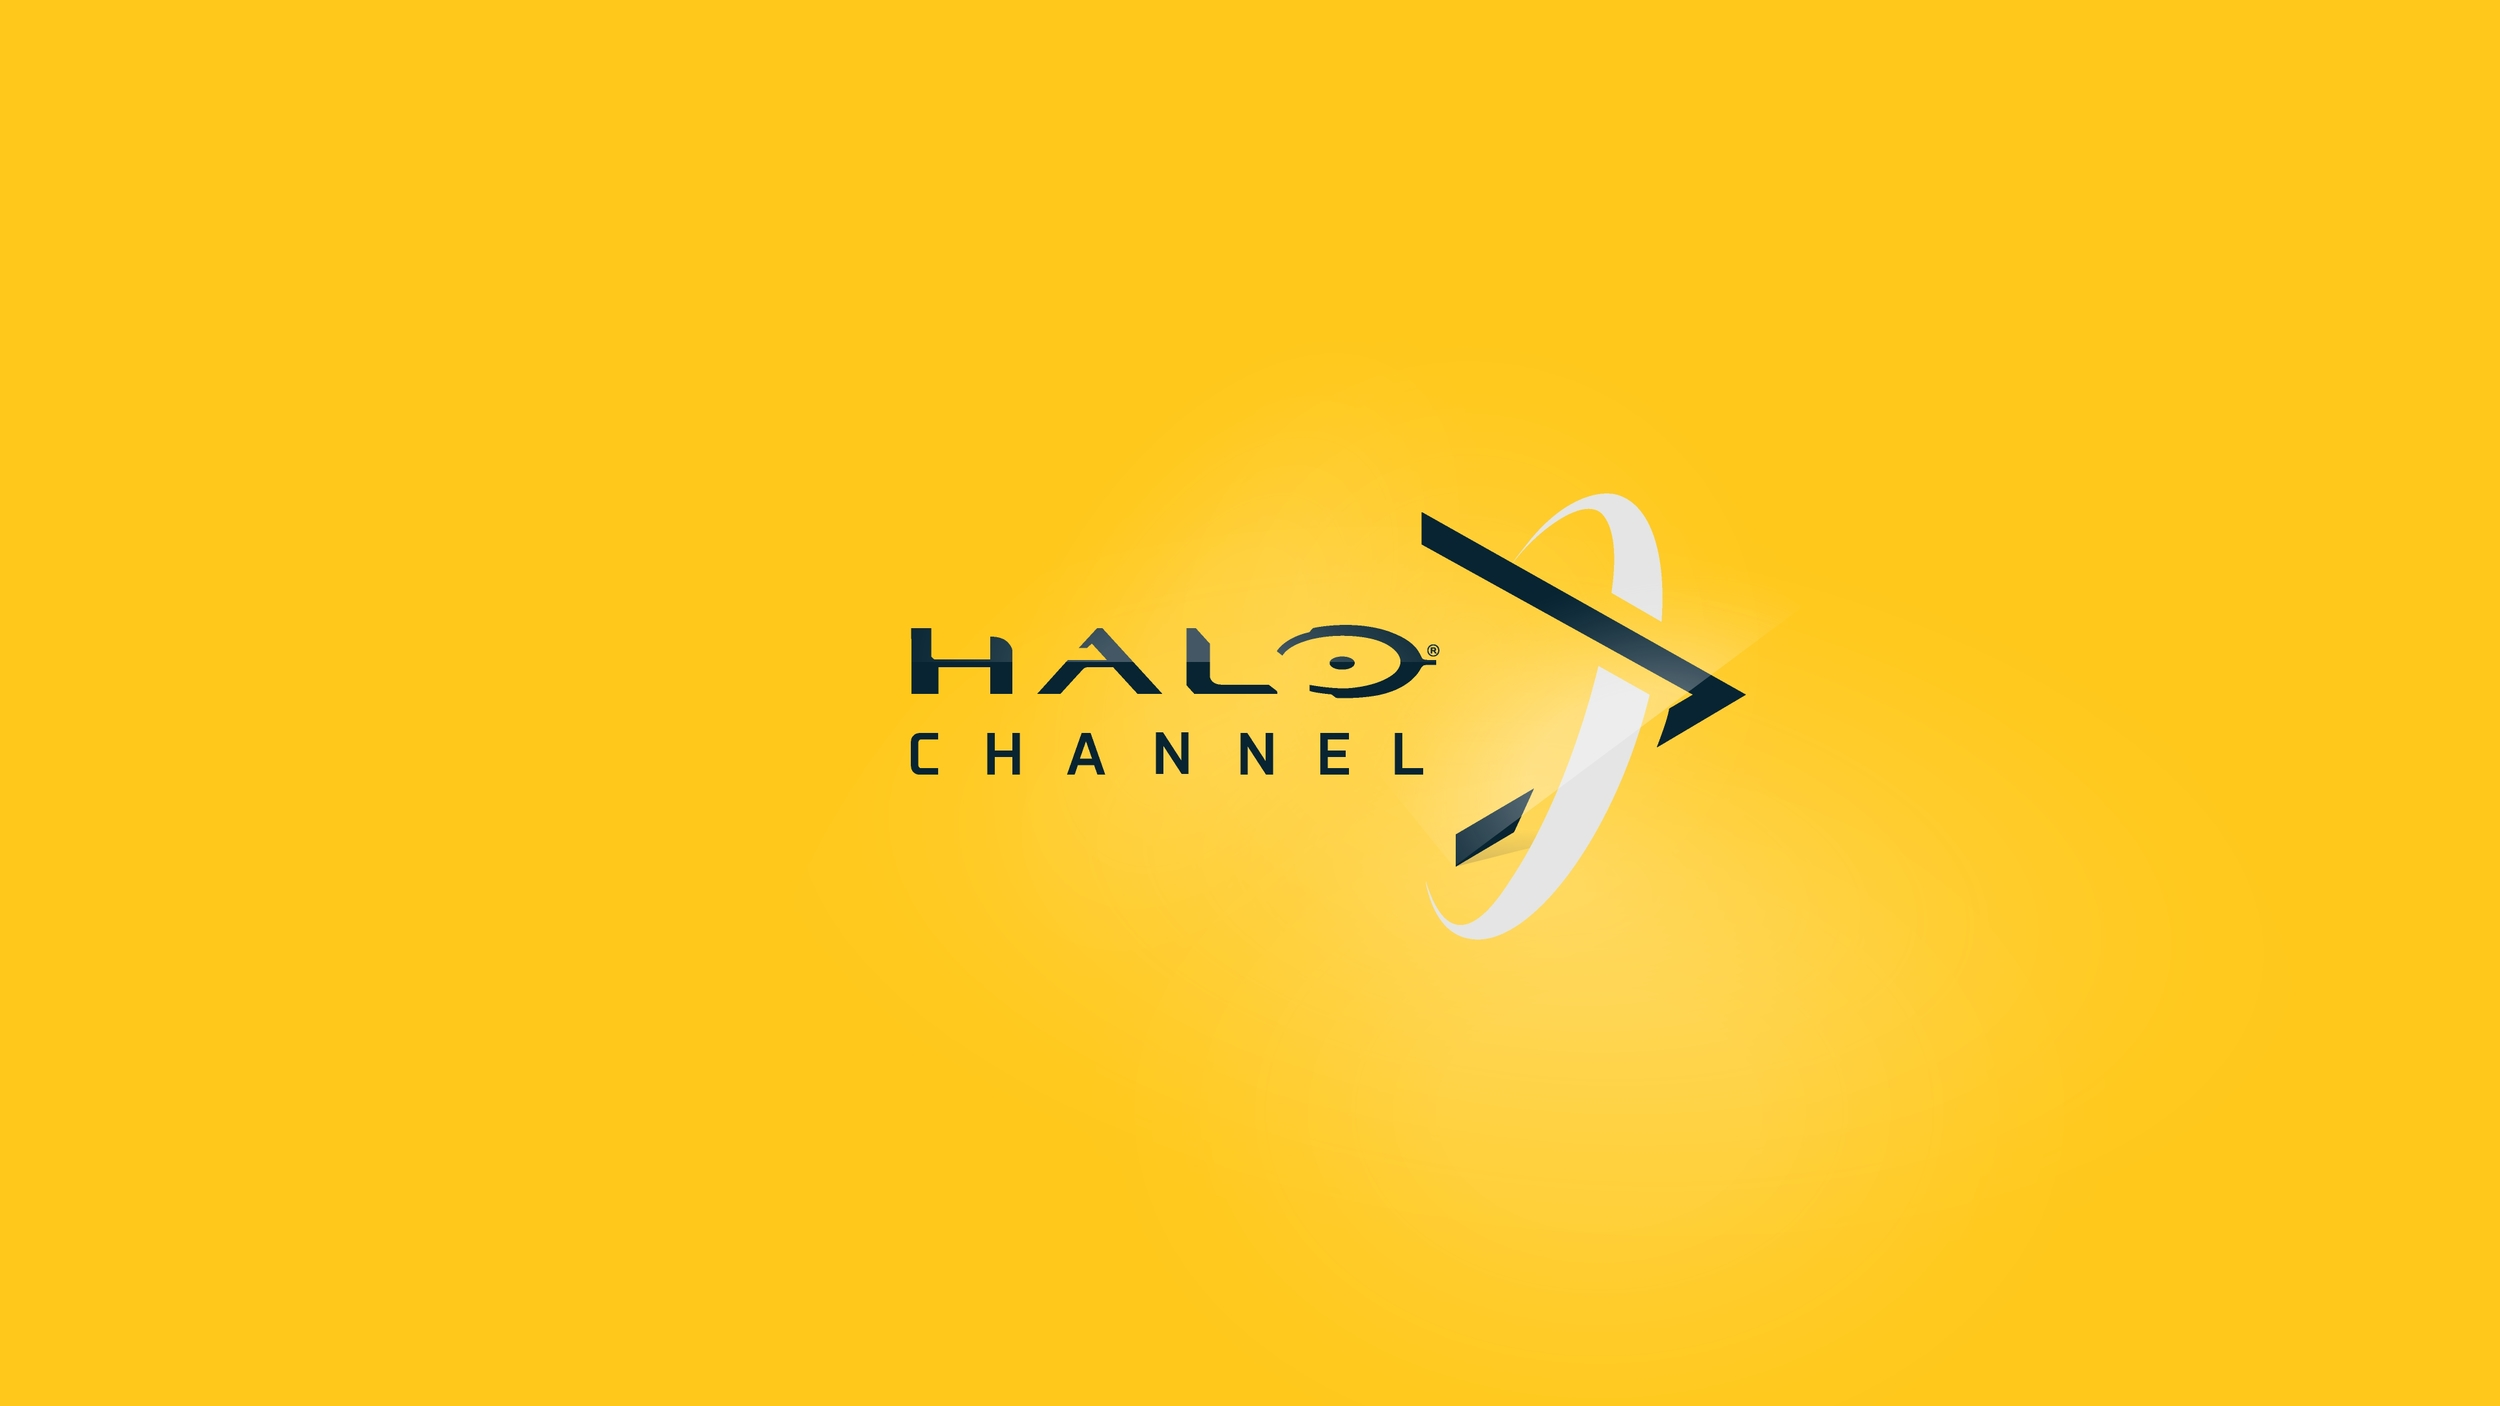 "<span style=""text-transform:uppercase;float:left;font-family:Changa;font-weight:normal;font-size:12px; padding:5px;letter-spacing:3px;"">Halo Channel</span>"